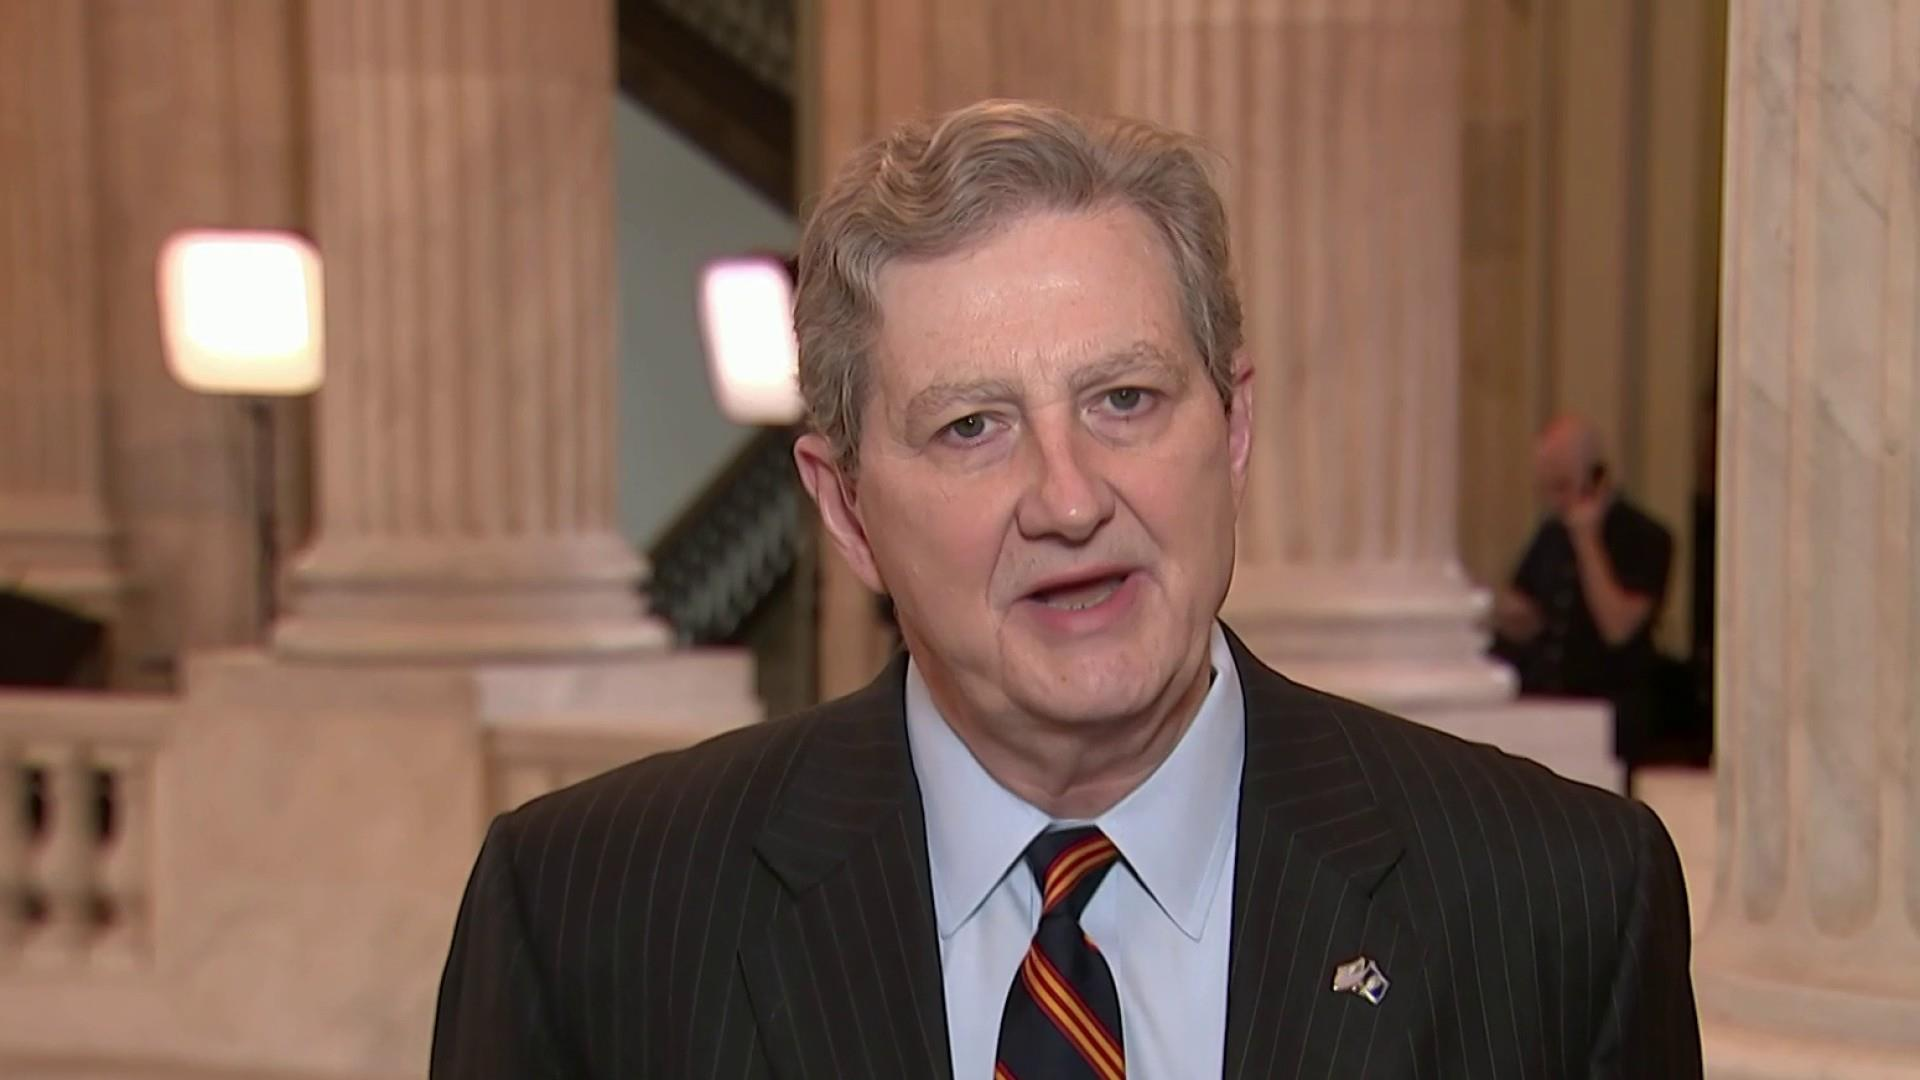 Sen. Kennedy believes Kavanaugh will be confirmed